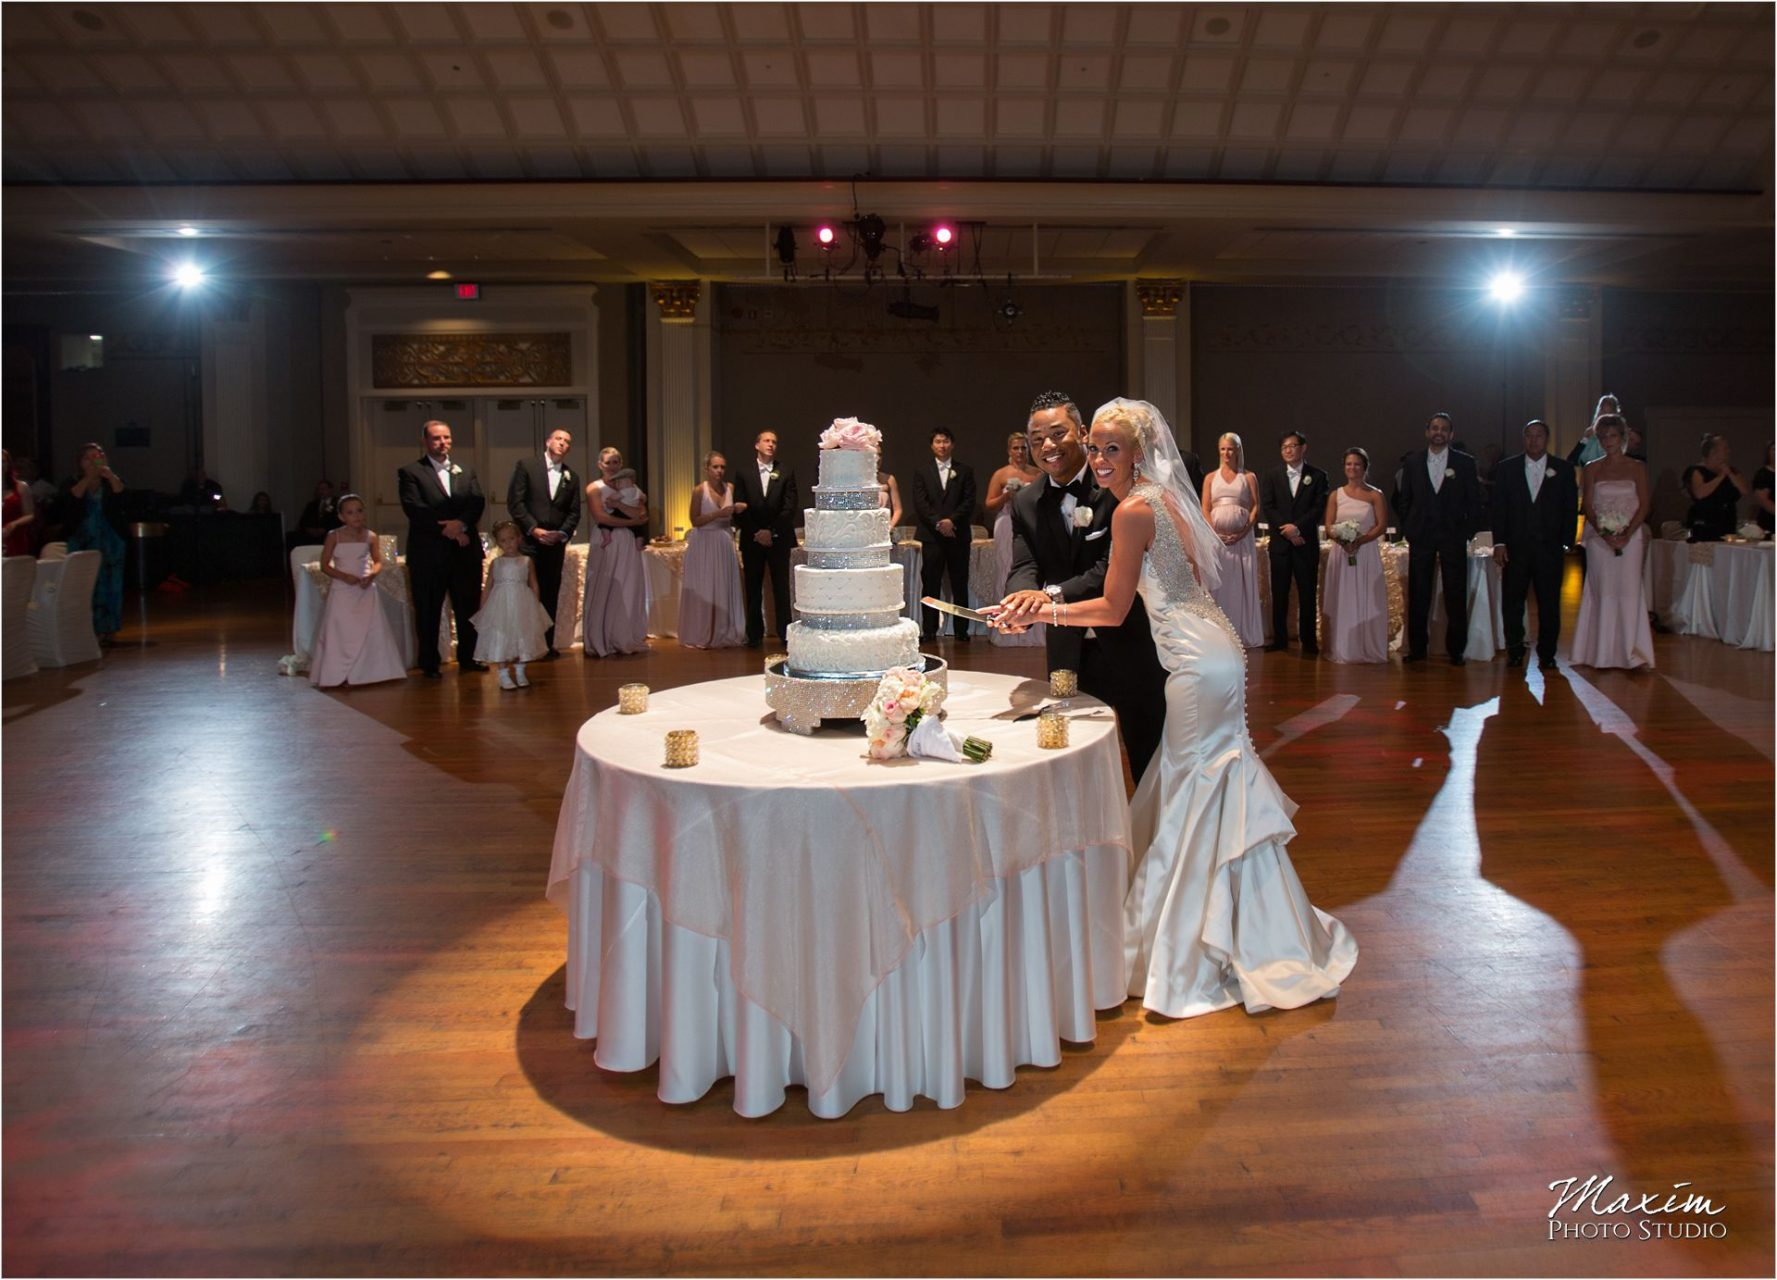 Cincinnati Wedding Photographers Music Hall Wedding Reception Tres Bell Cakes